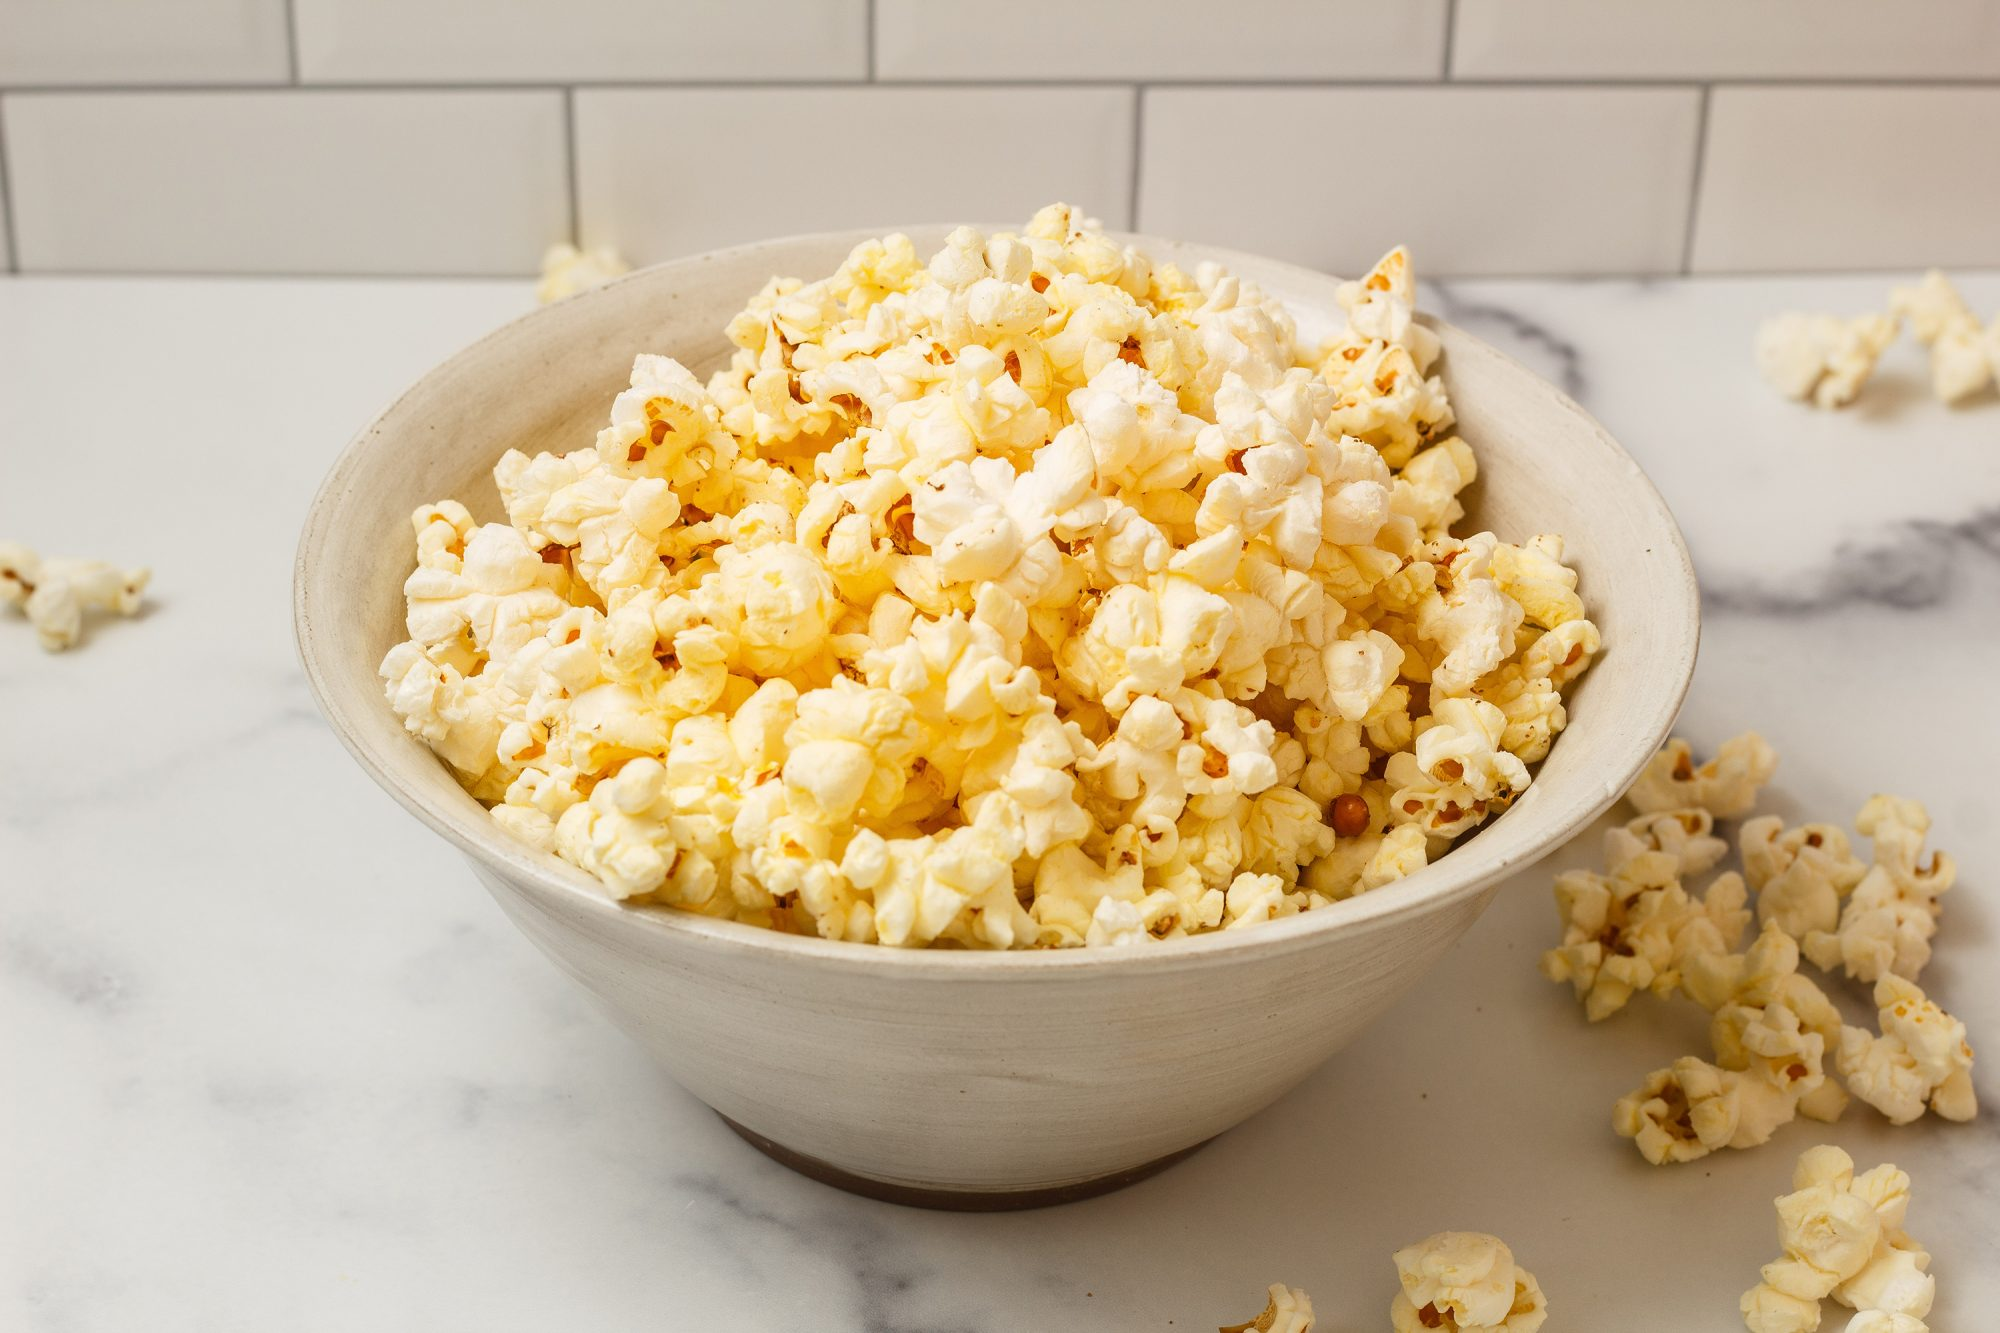 freshly popped popcorn sits in a white stoneware bowl on a white counter with white subway tiles behind it